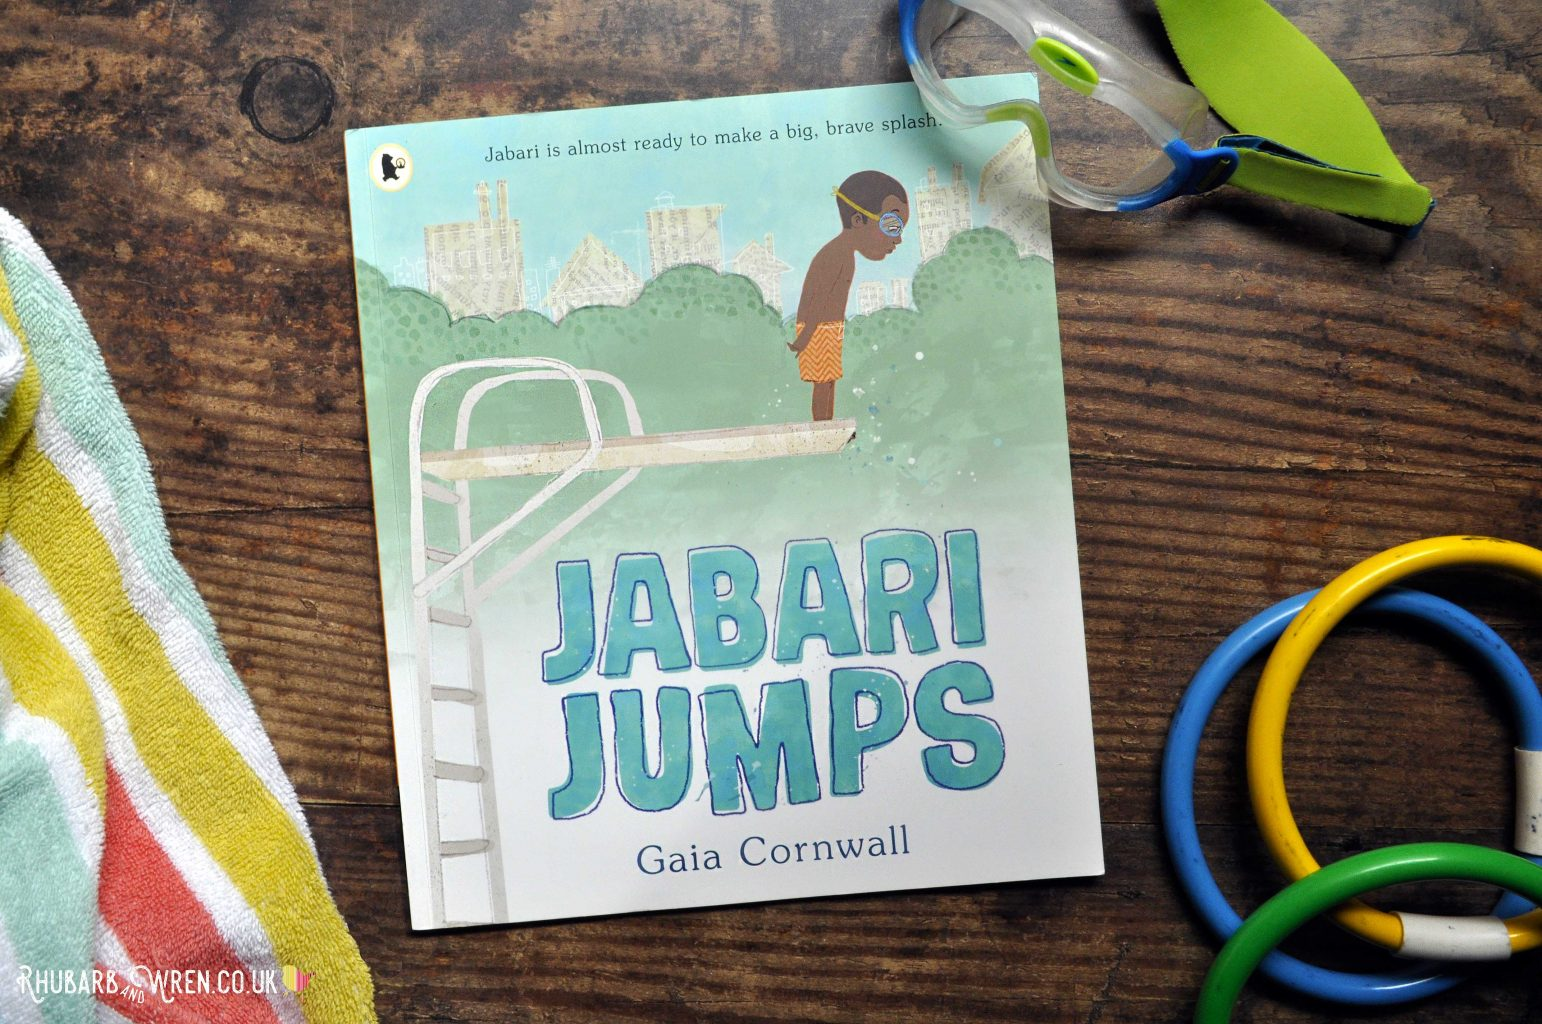 Children's picture book Jabari Jumps by Gaia Cornwall